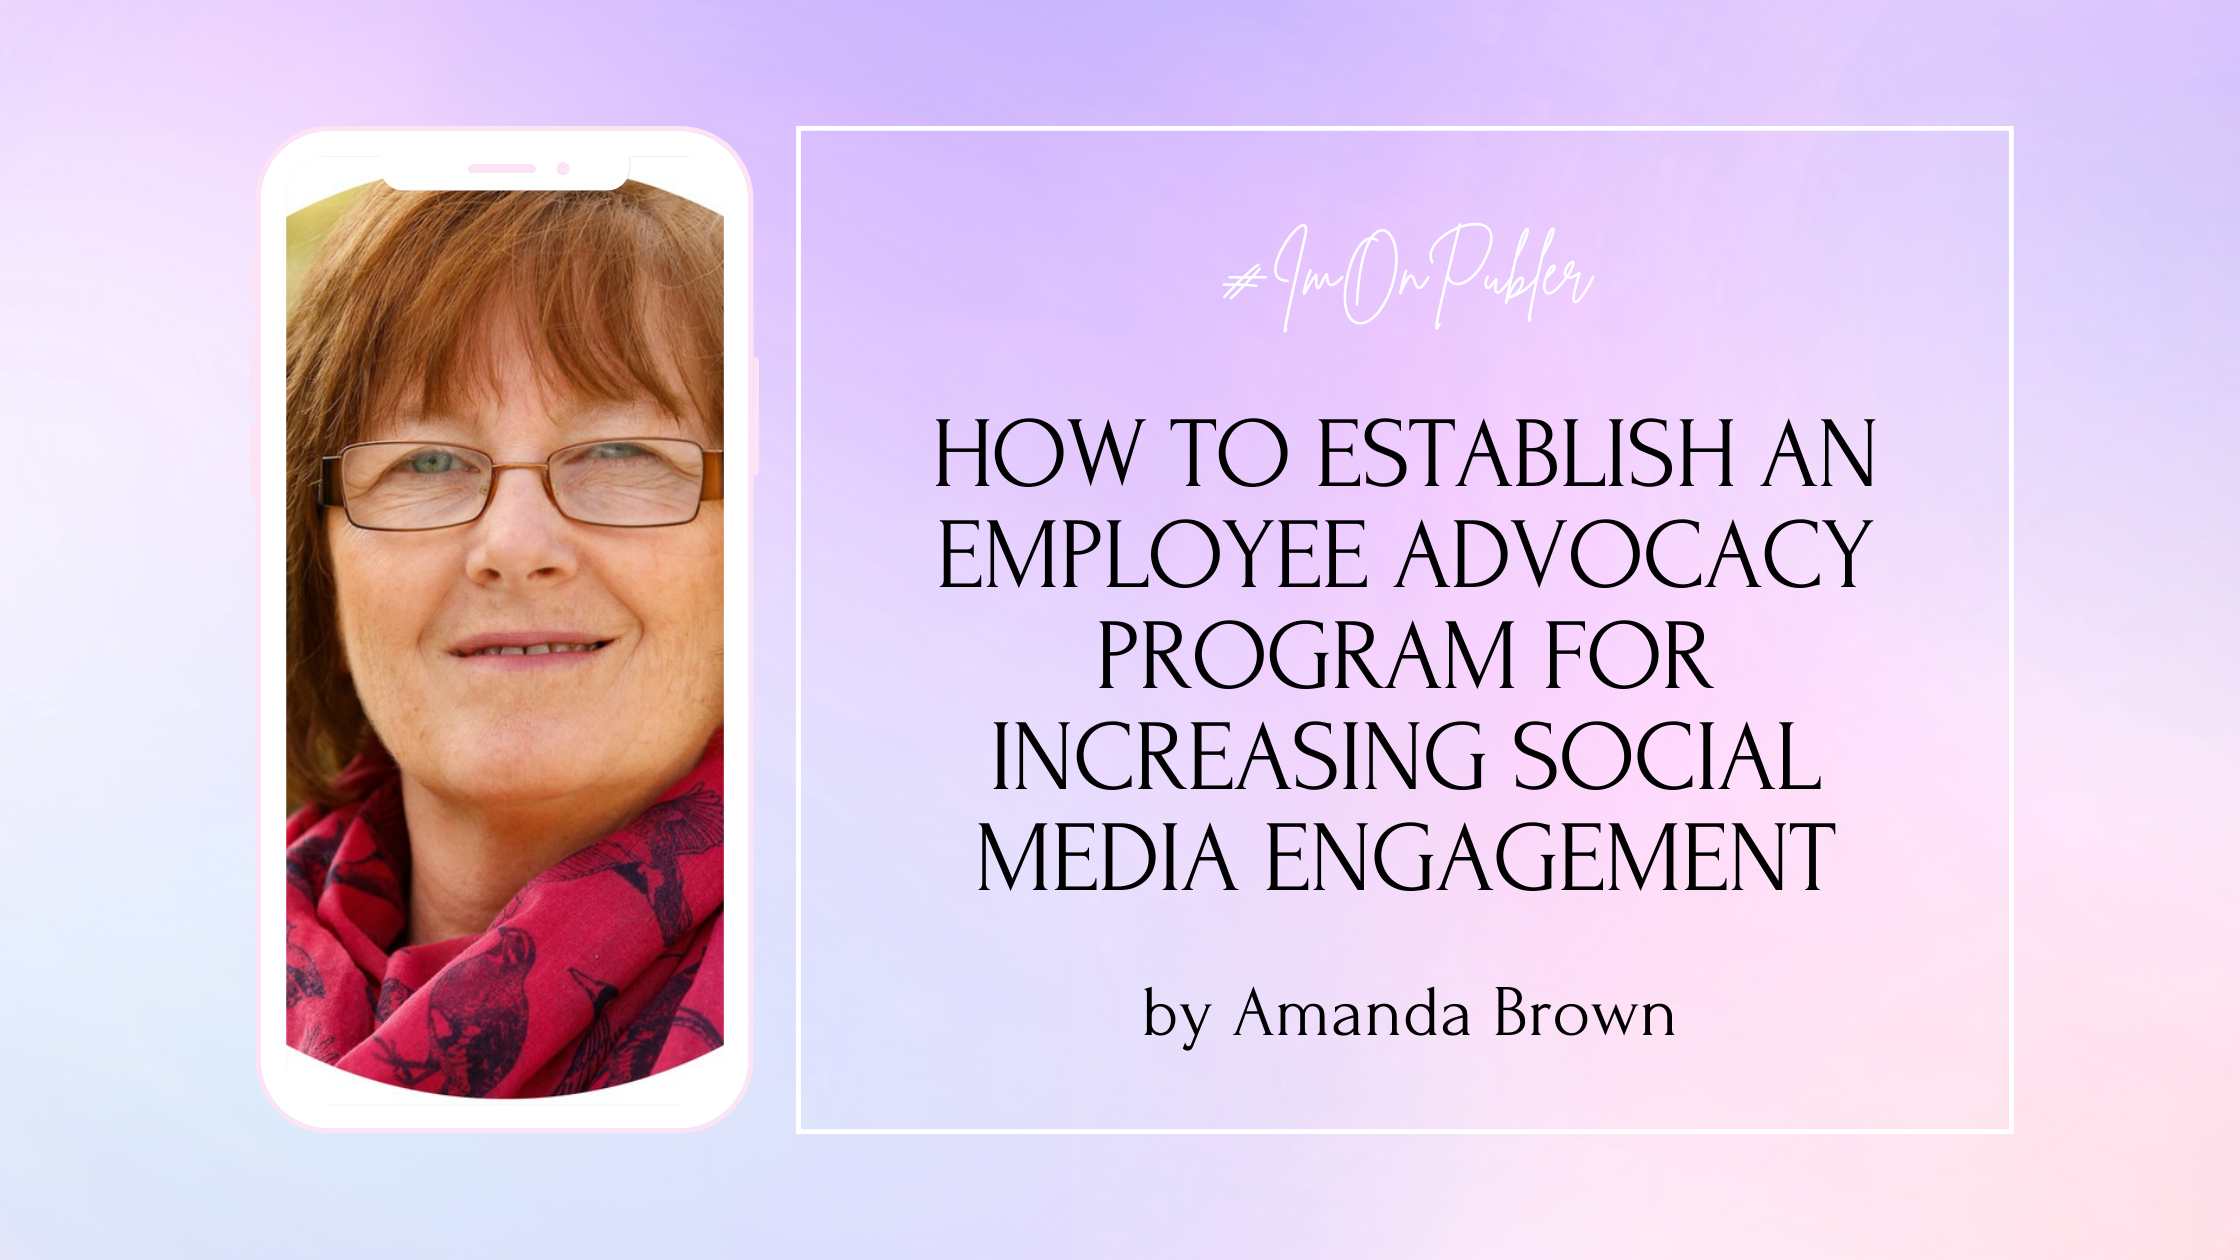 How to establish an Employee Advocacy Program for increasing Social Media Engagement